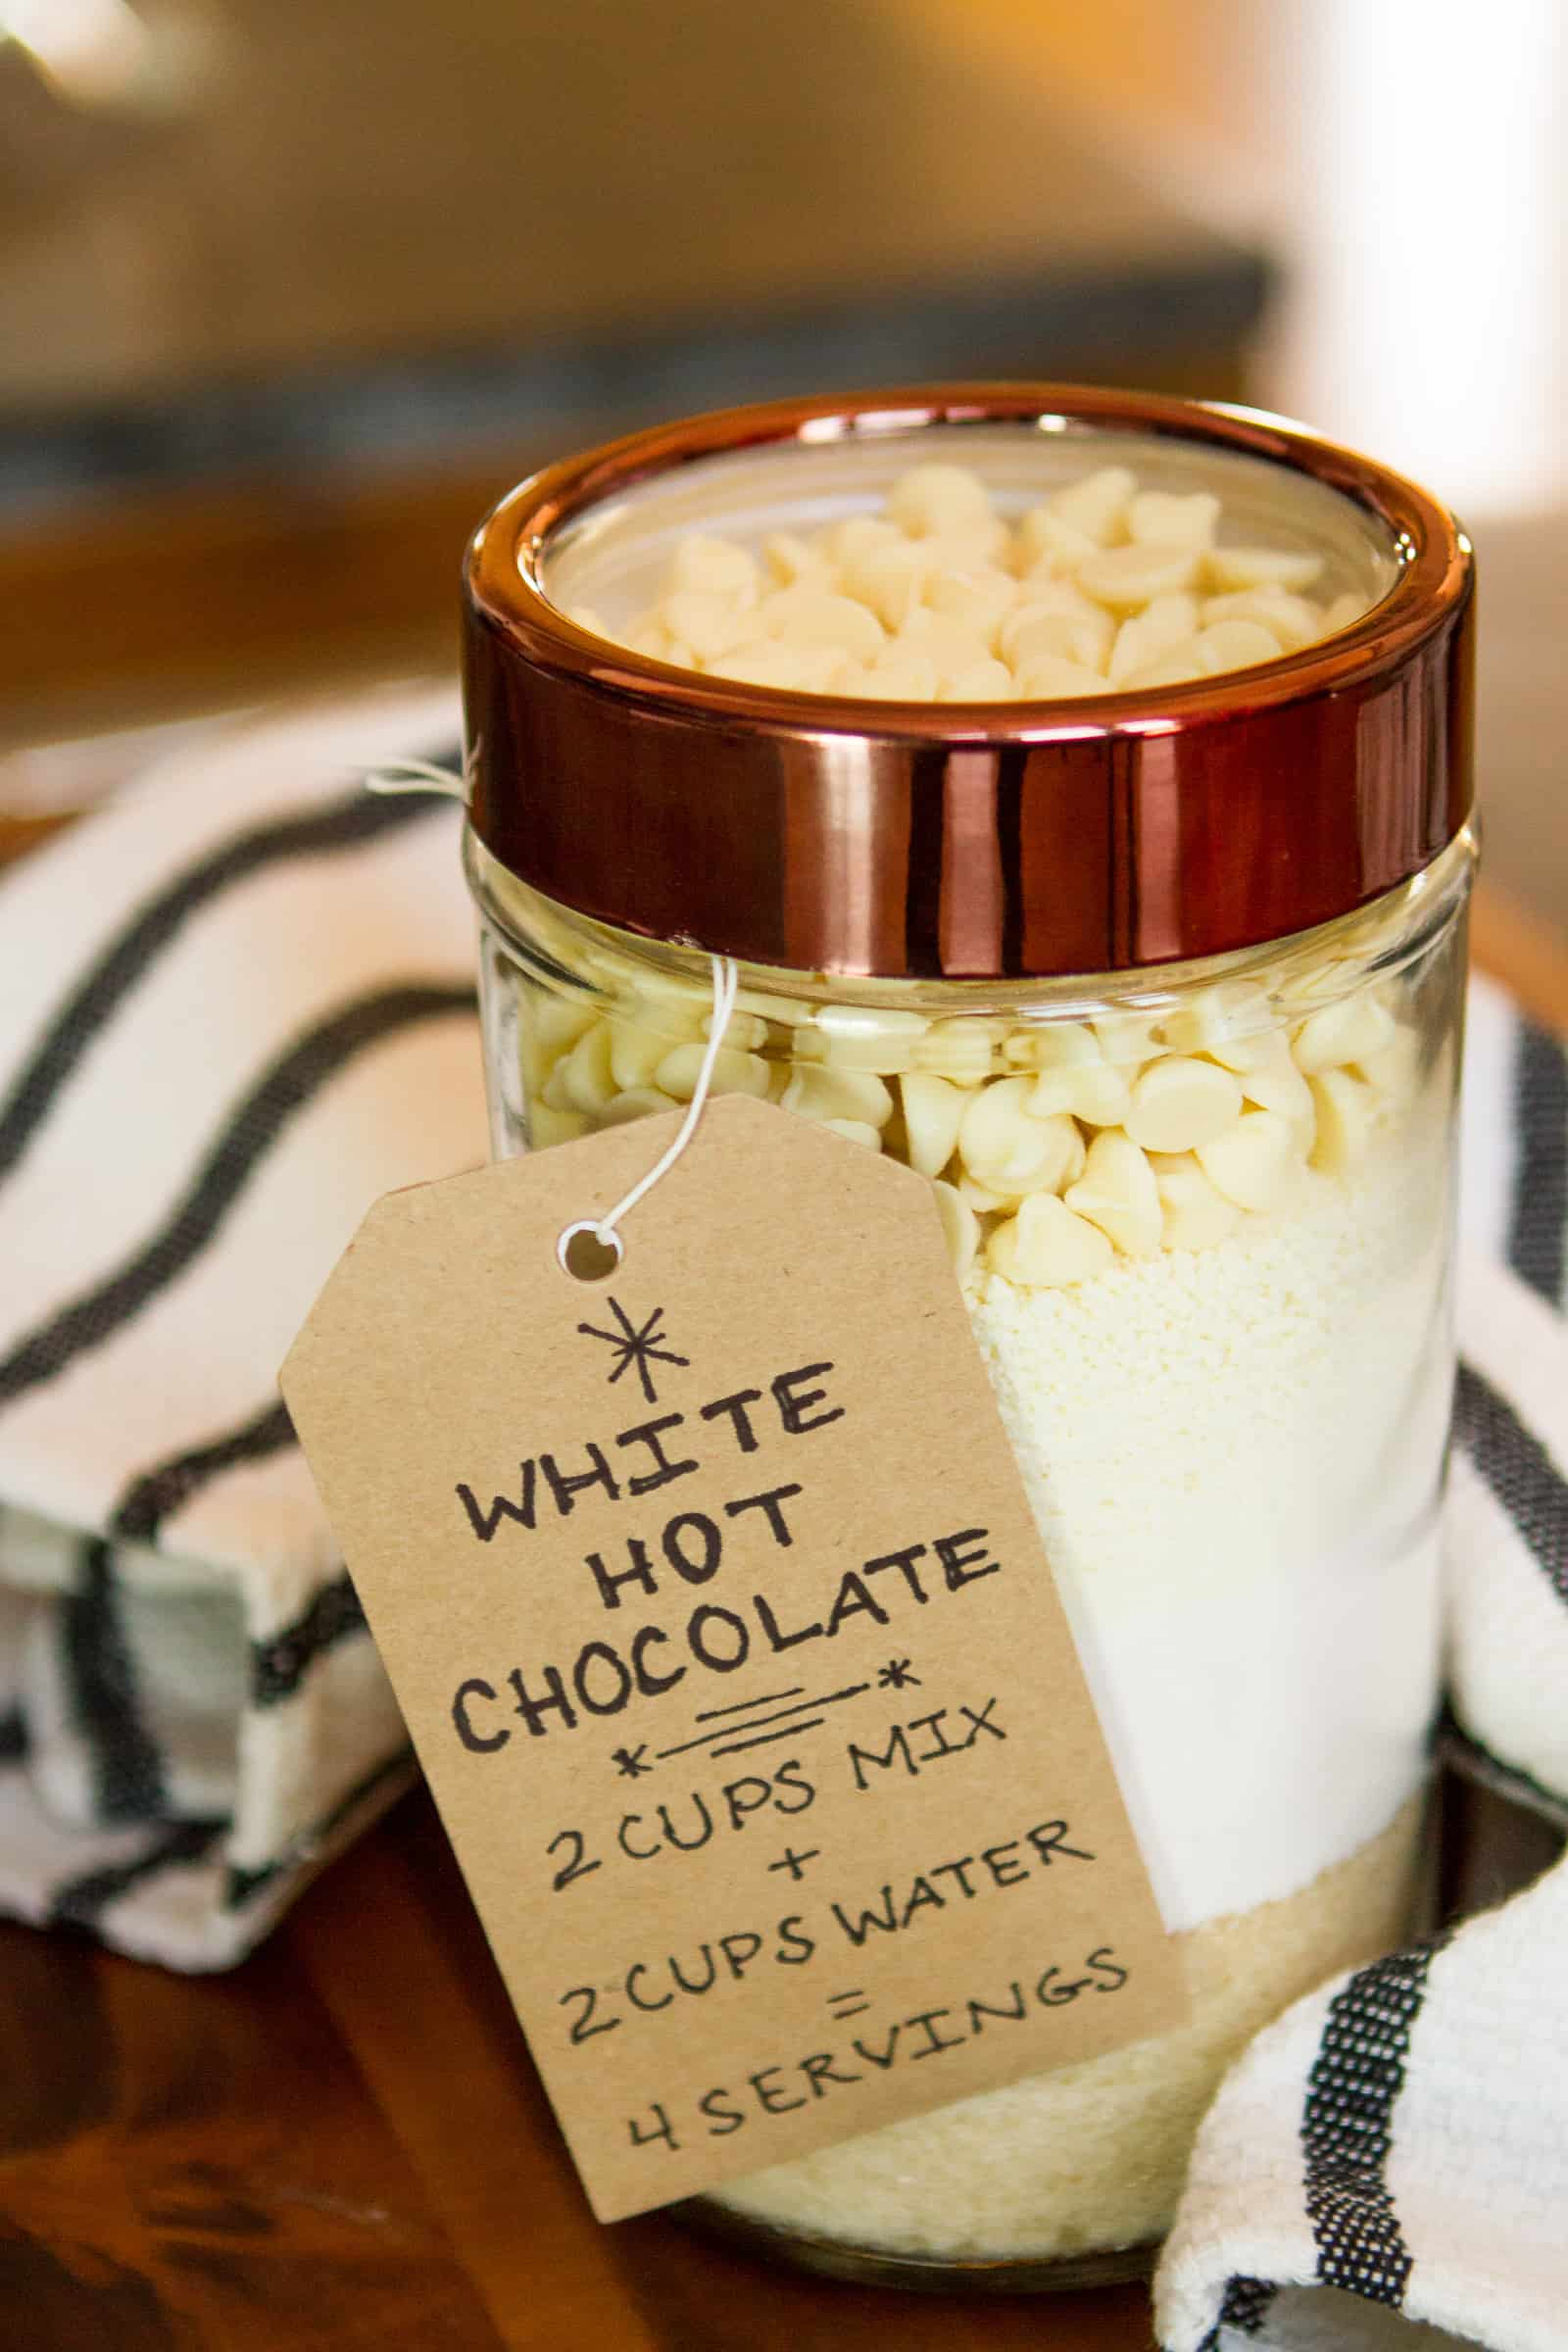 White Hot Chocolate Mix -- a new twist on the classic mason jar gift idea, this tasty white hot chocolate mix is layered in a gorgeous glass storage jar with copper-colored lid from At Home… Perfect as a teacher gift, thank you gift, hostess gift, etc! | via @unsophisticook on unsophisticook.com